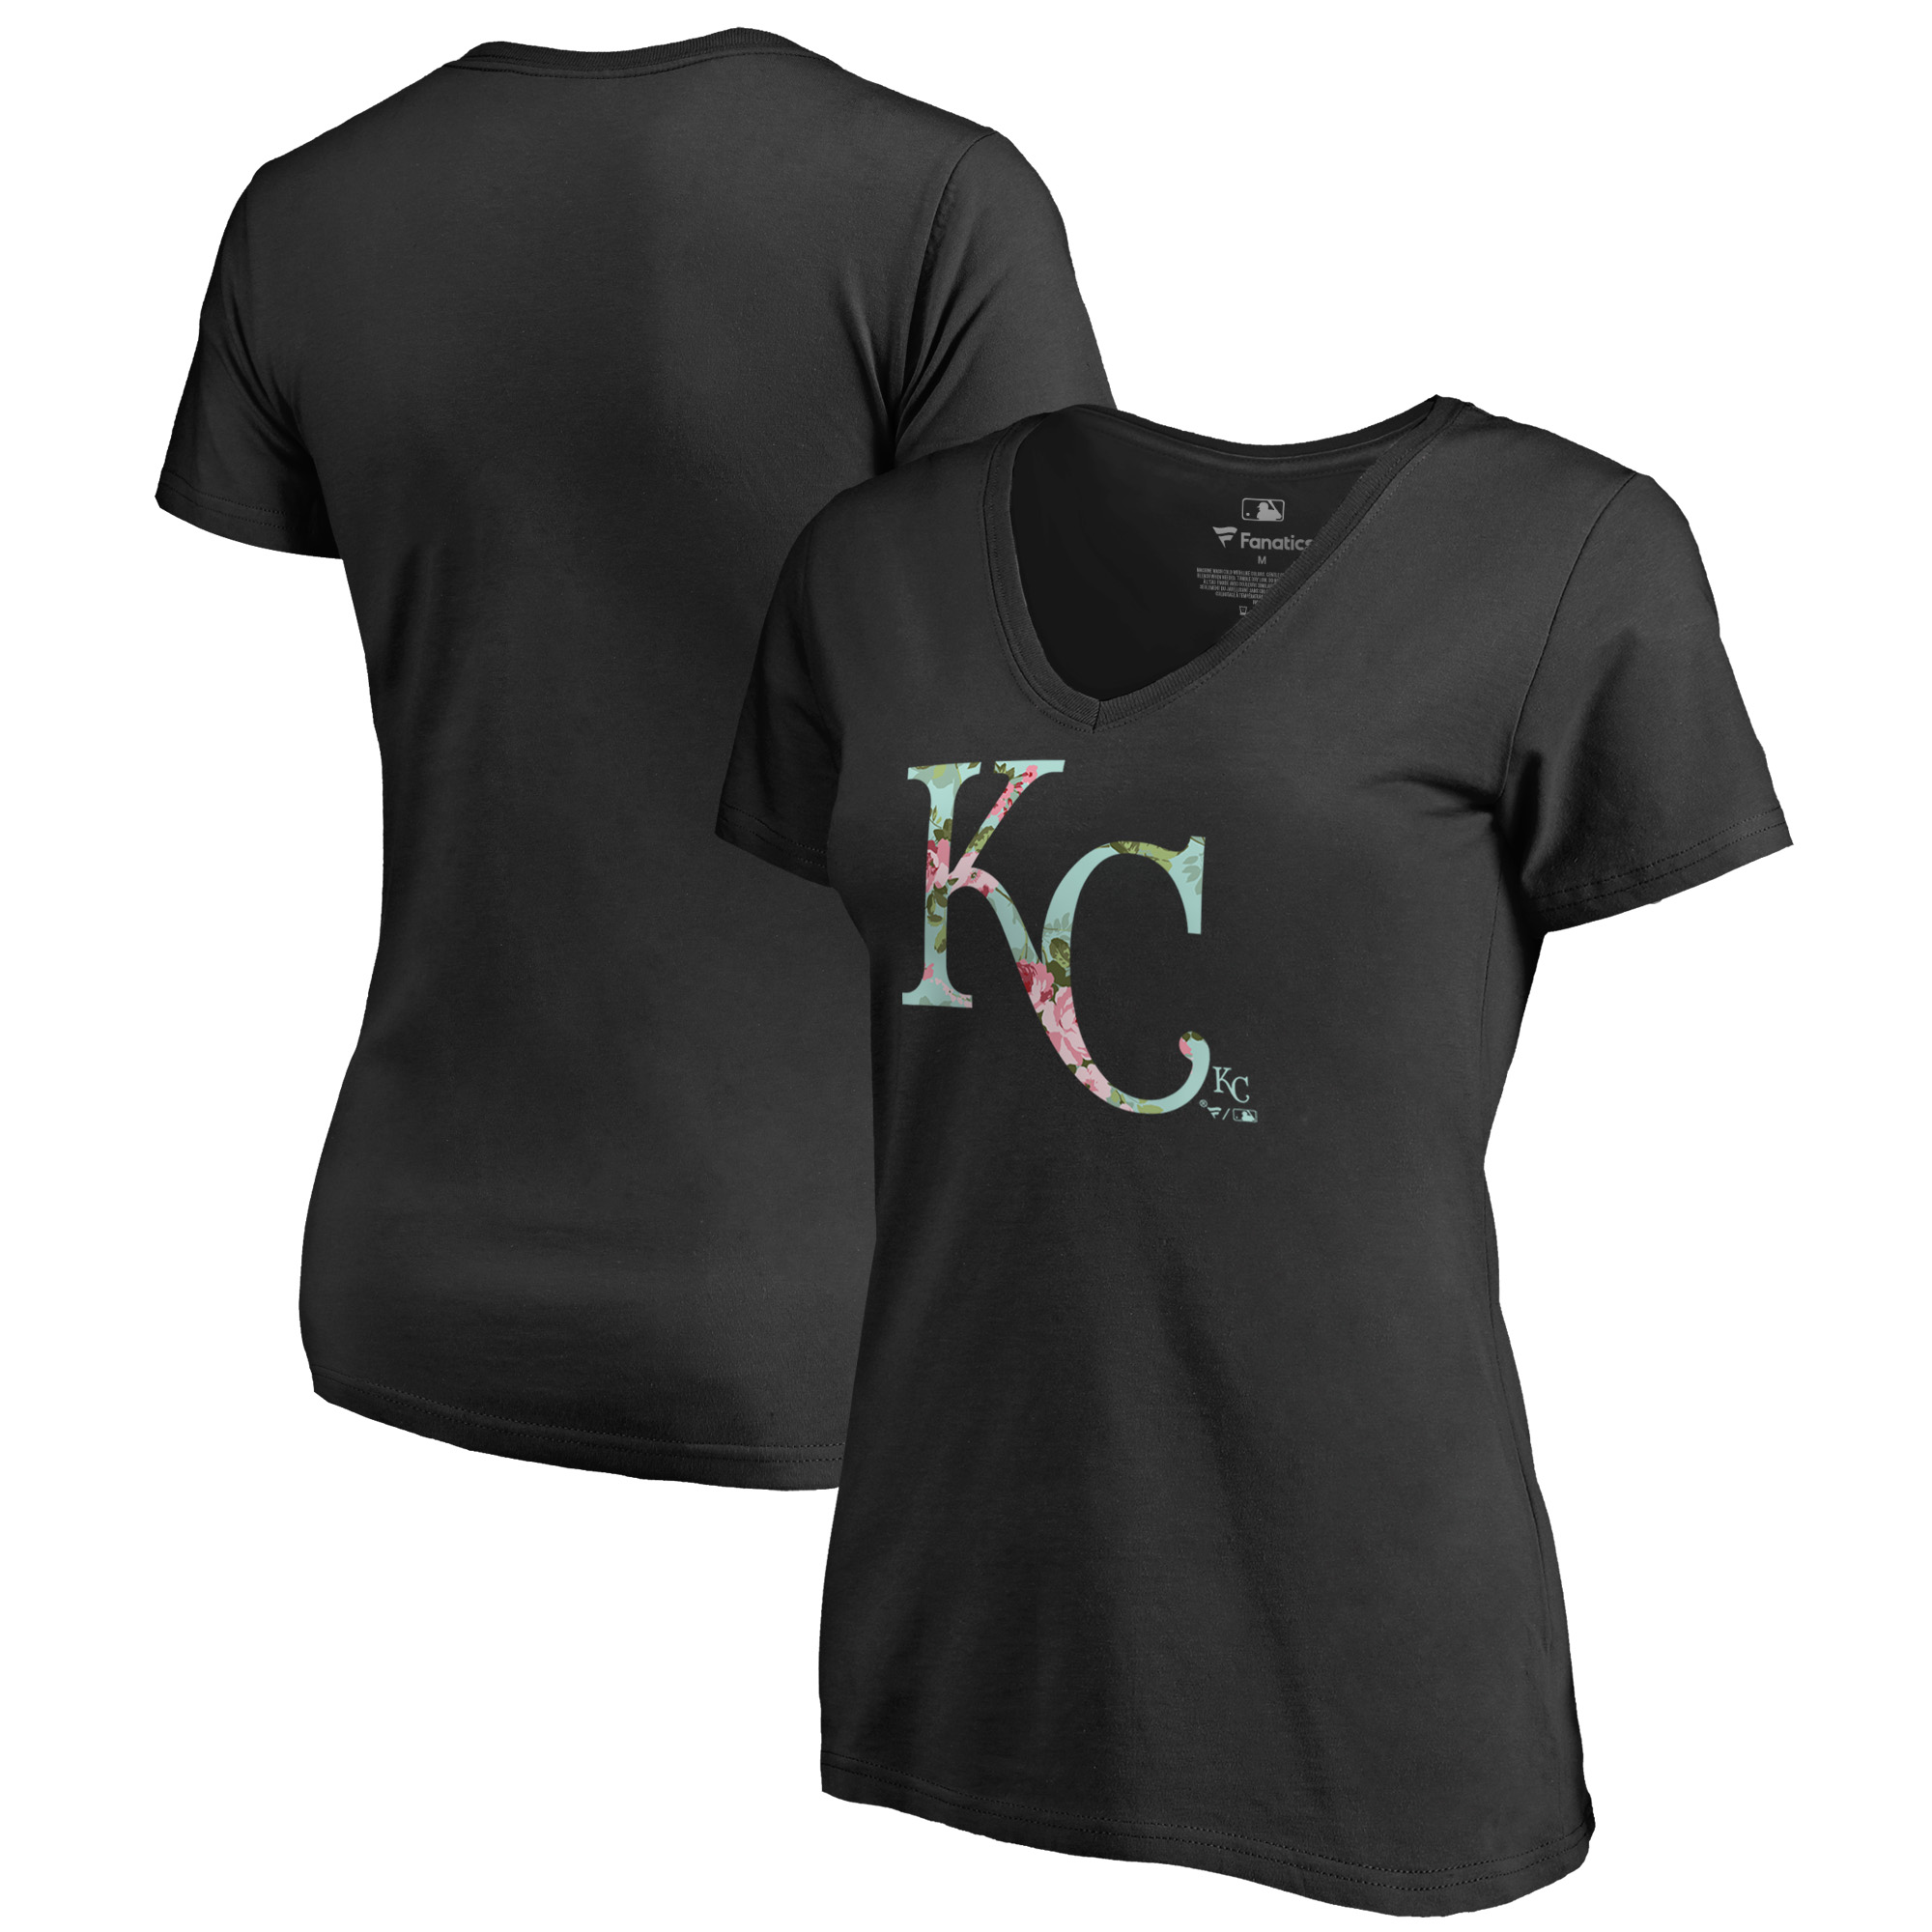 Kansas City Royals Fanatics Branded Women's Lovely V-Neck T-Shirt - Black